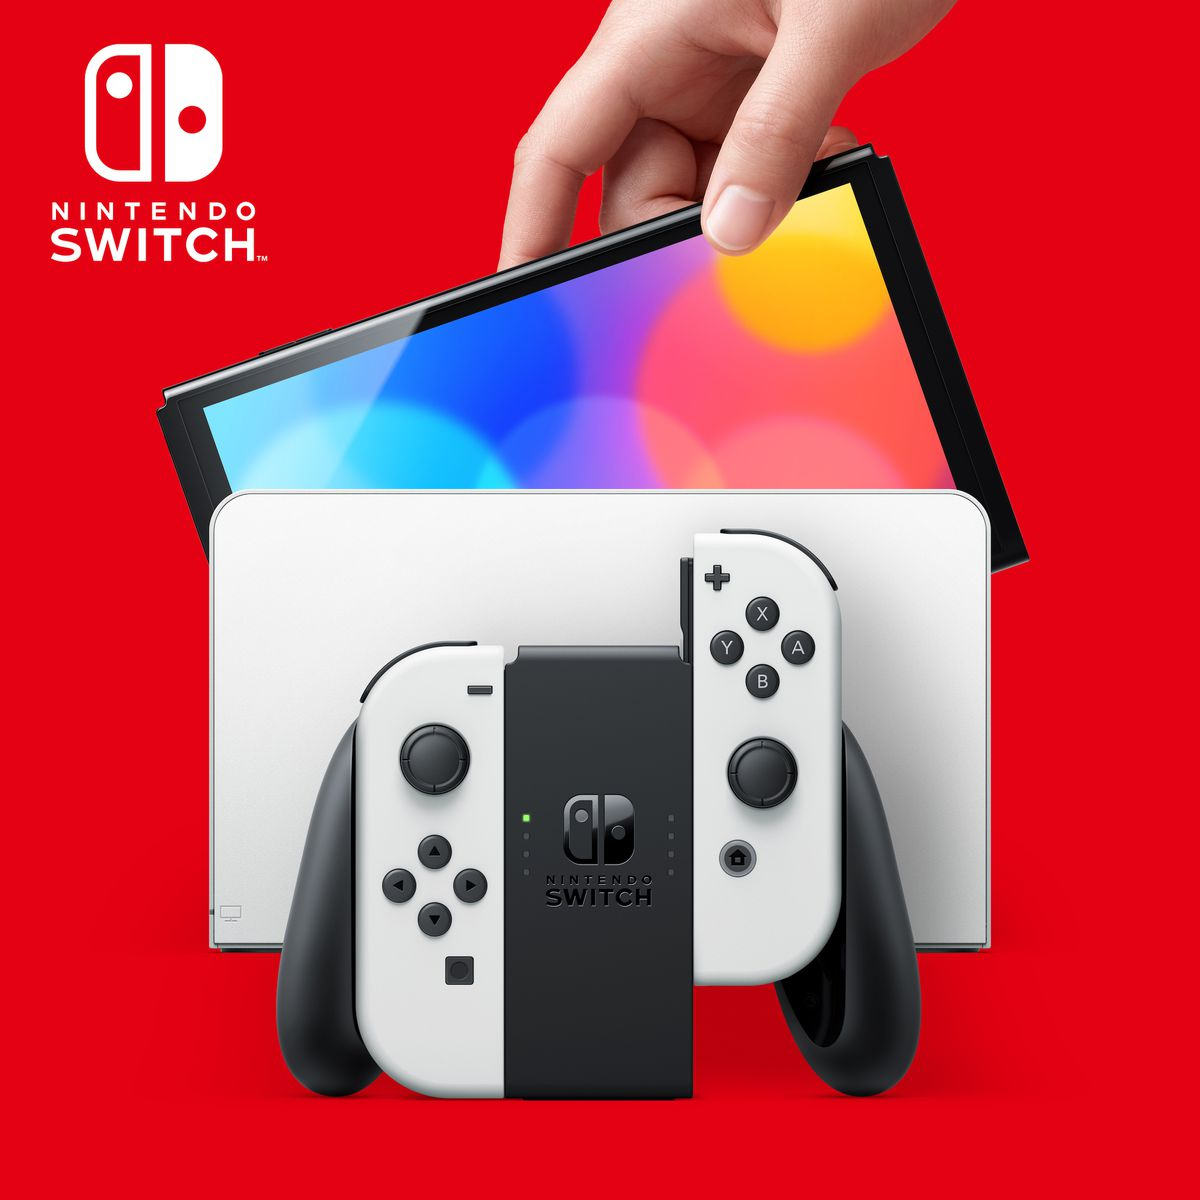 The new Nintendo Switch (OLED model) system and dock with white Joy-Cons